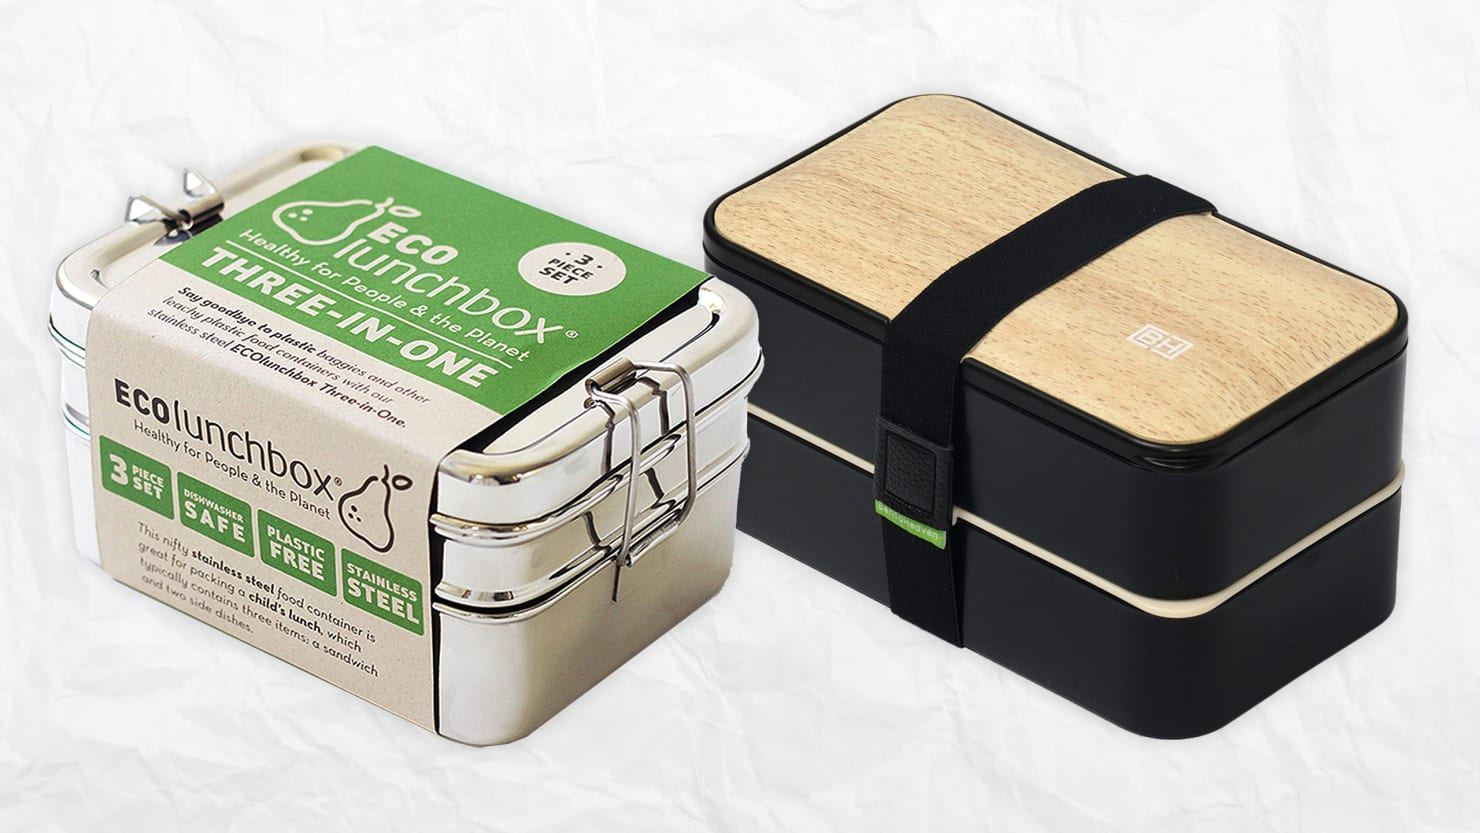 Pack Lunch For Work More Efficiently With These Bento Box Containers